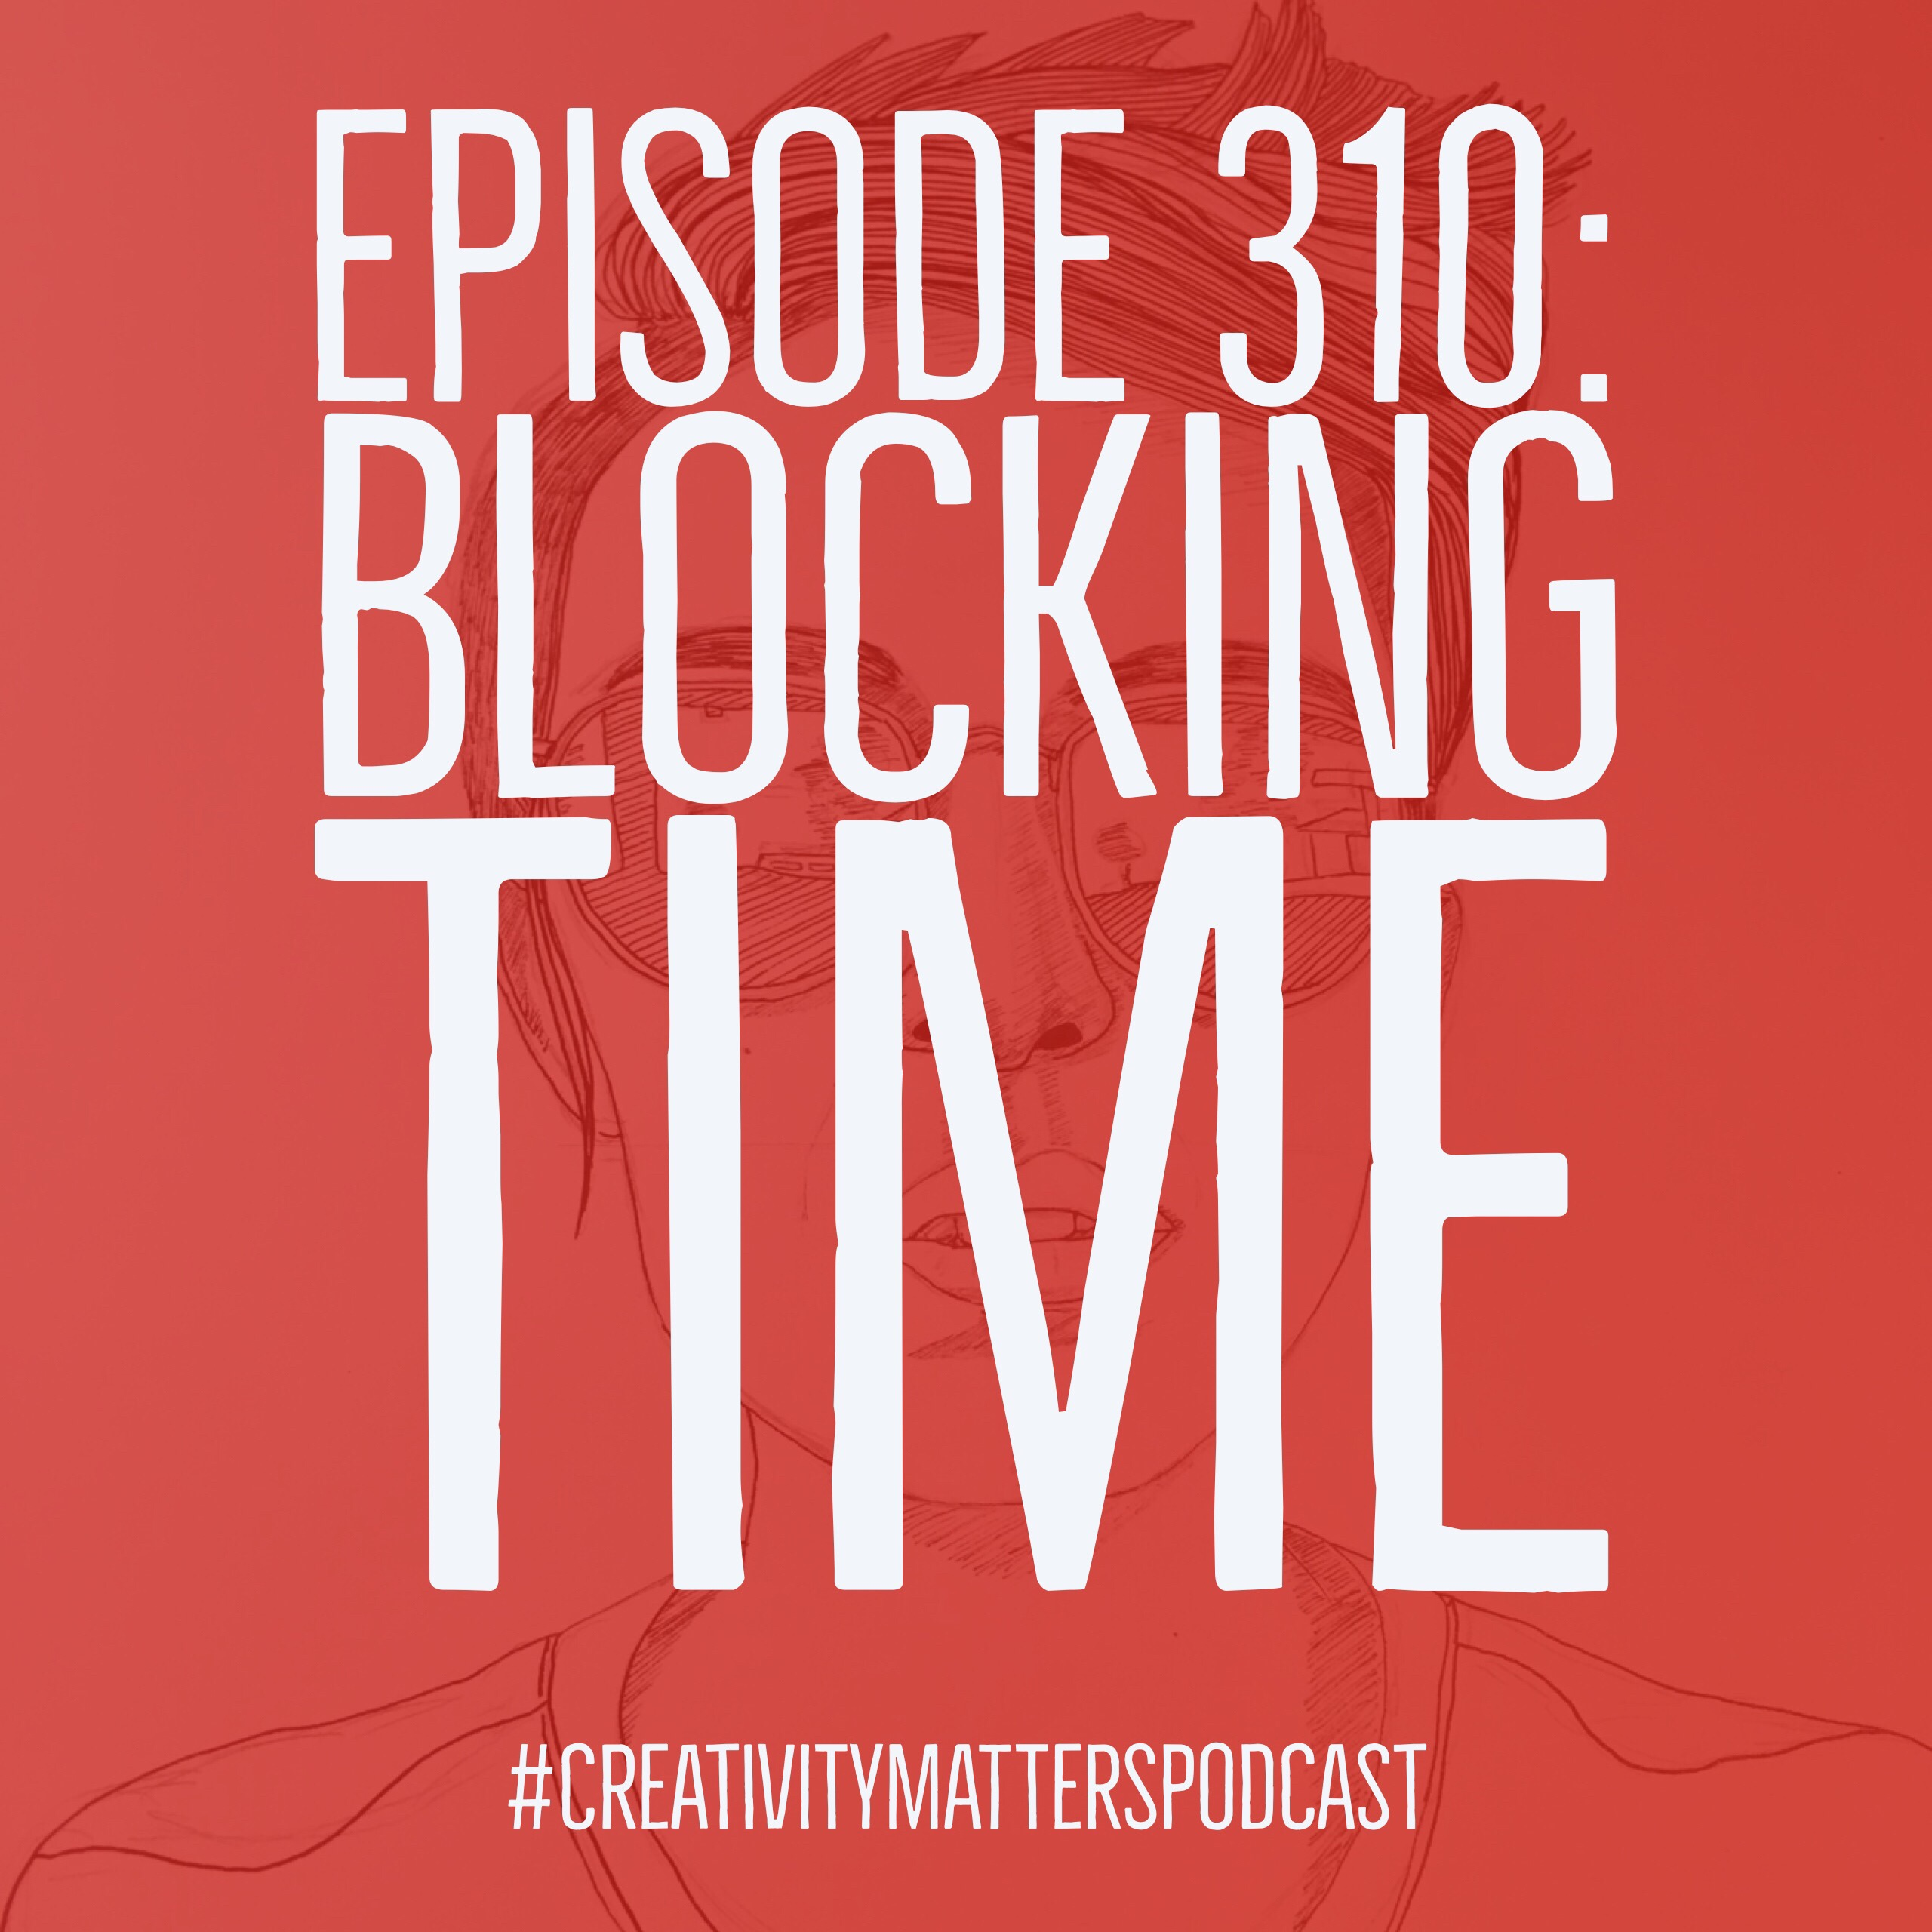 Episode 310: Blocking Time